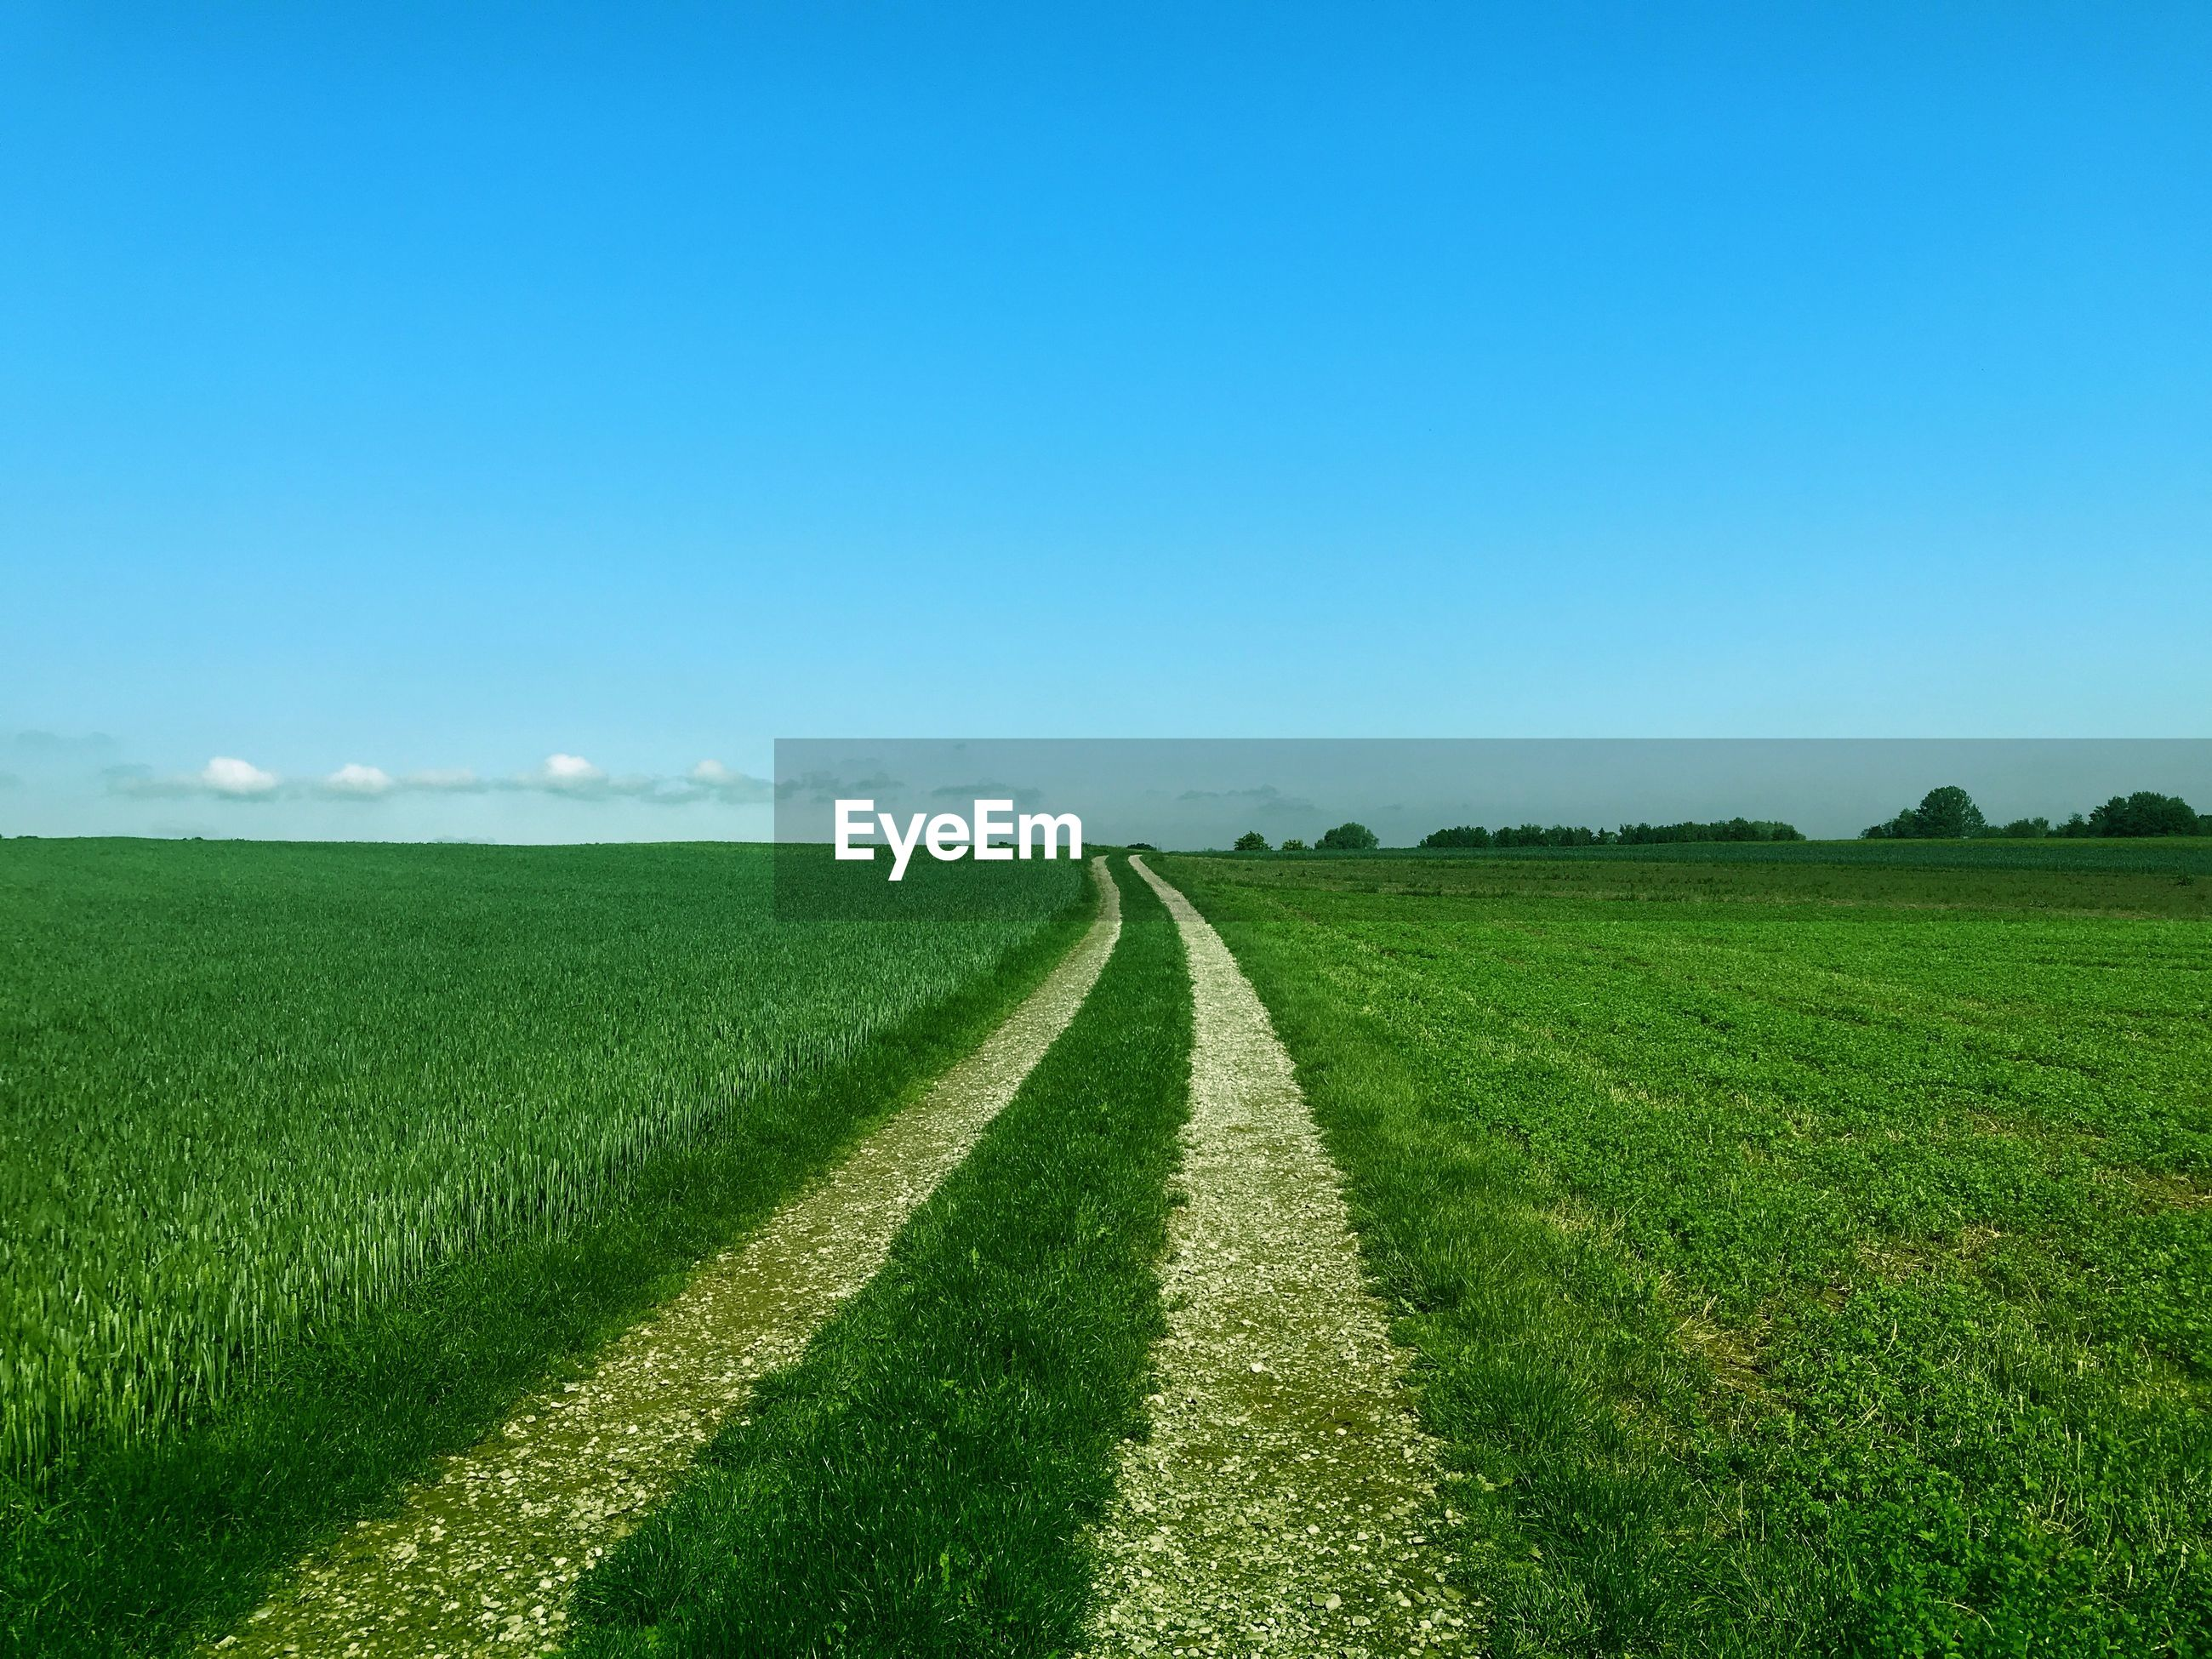 SCENIC VIEW OF FARM FIELD AGAINST CLEAR SKY